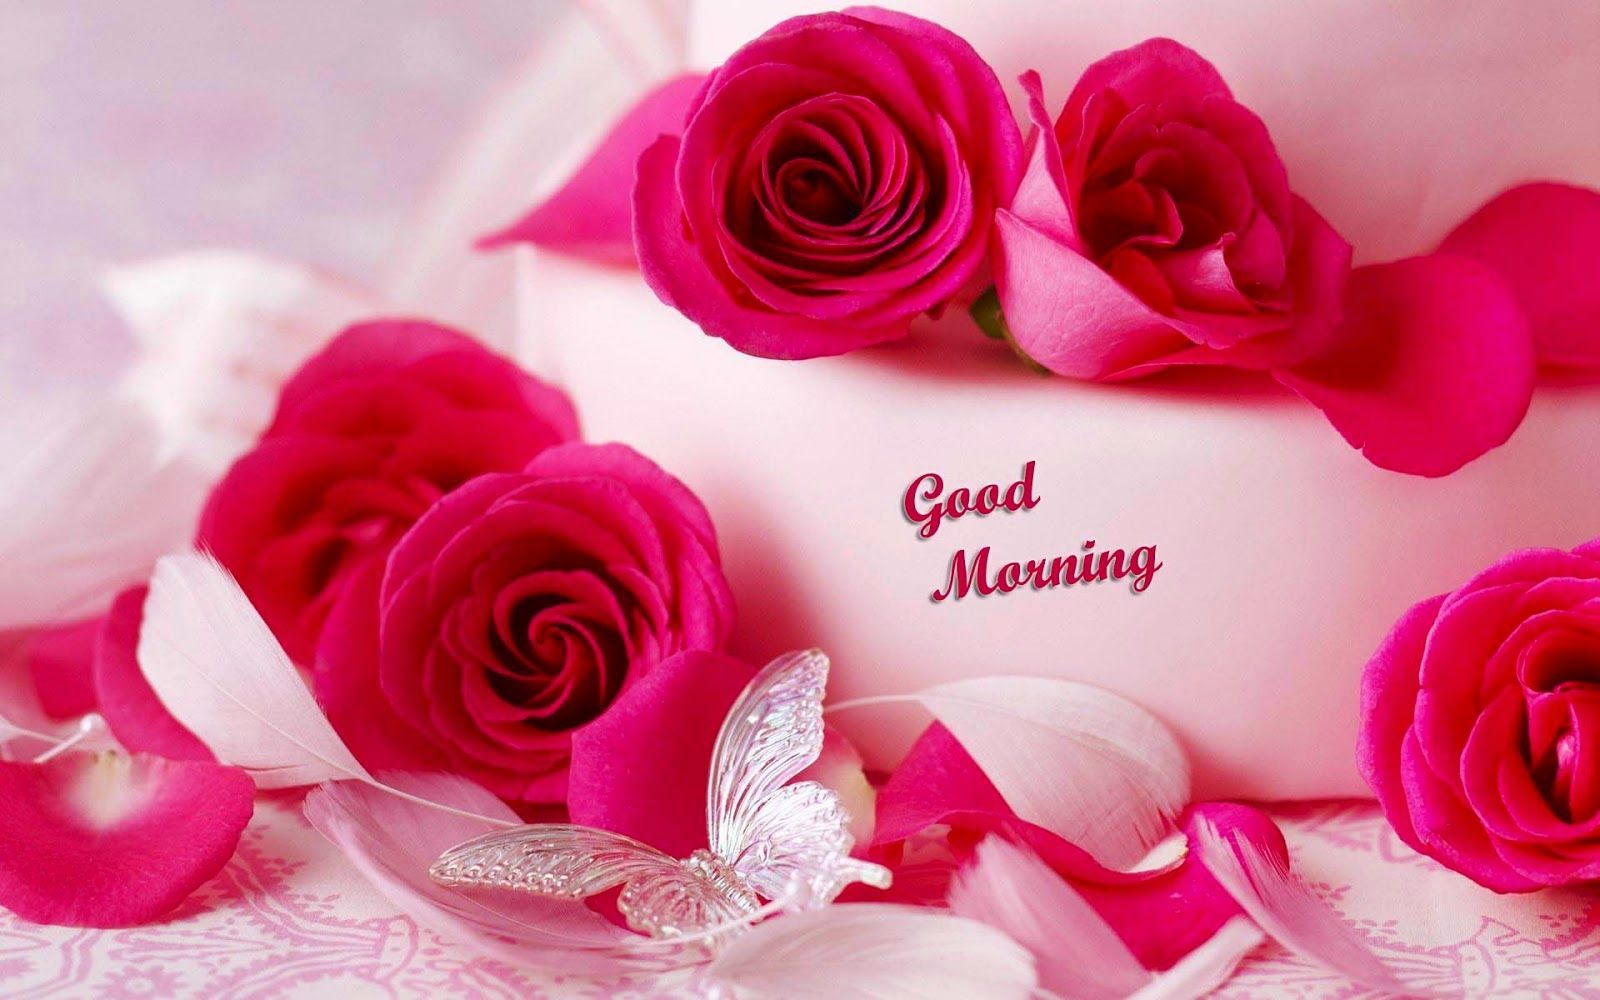 20+ Good Morning Images HD and Wallpapers ☆☆ Good